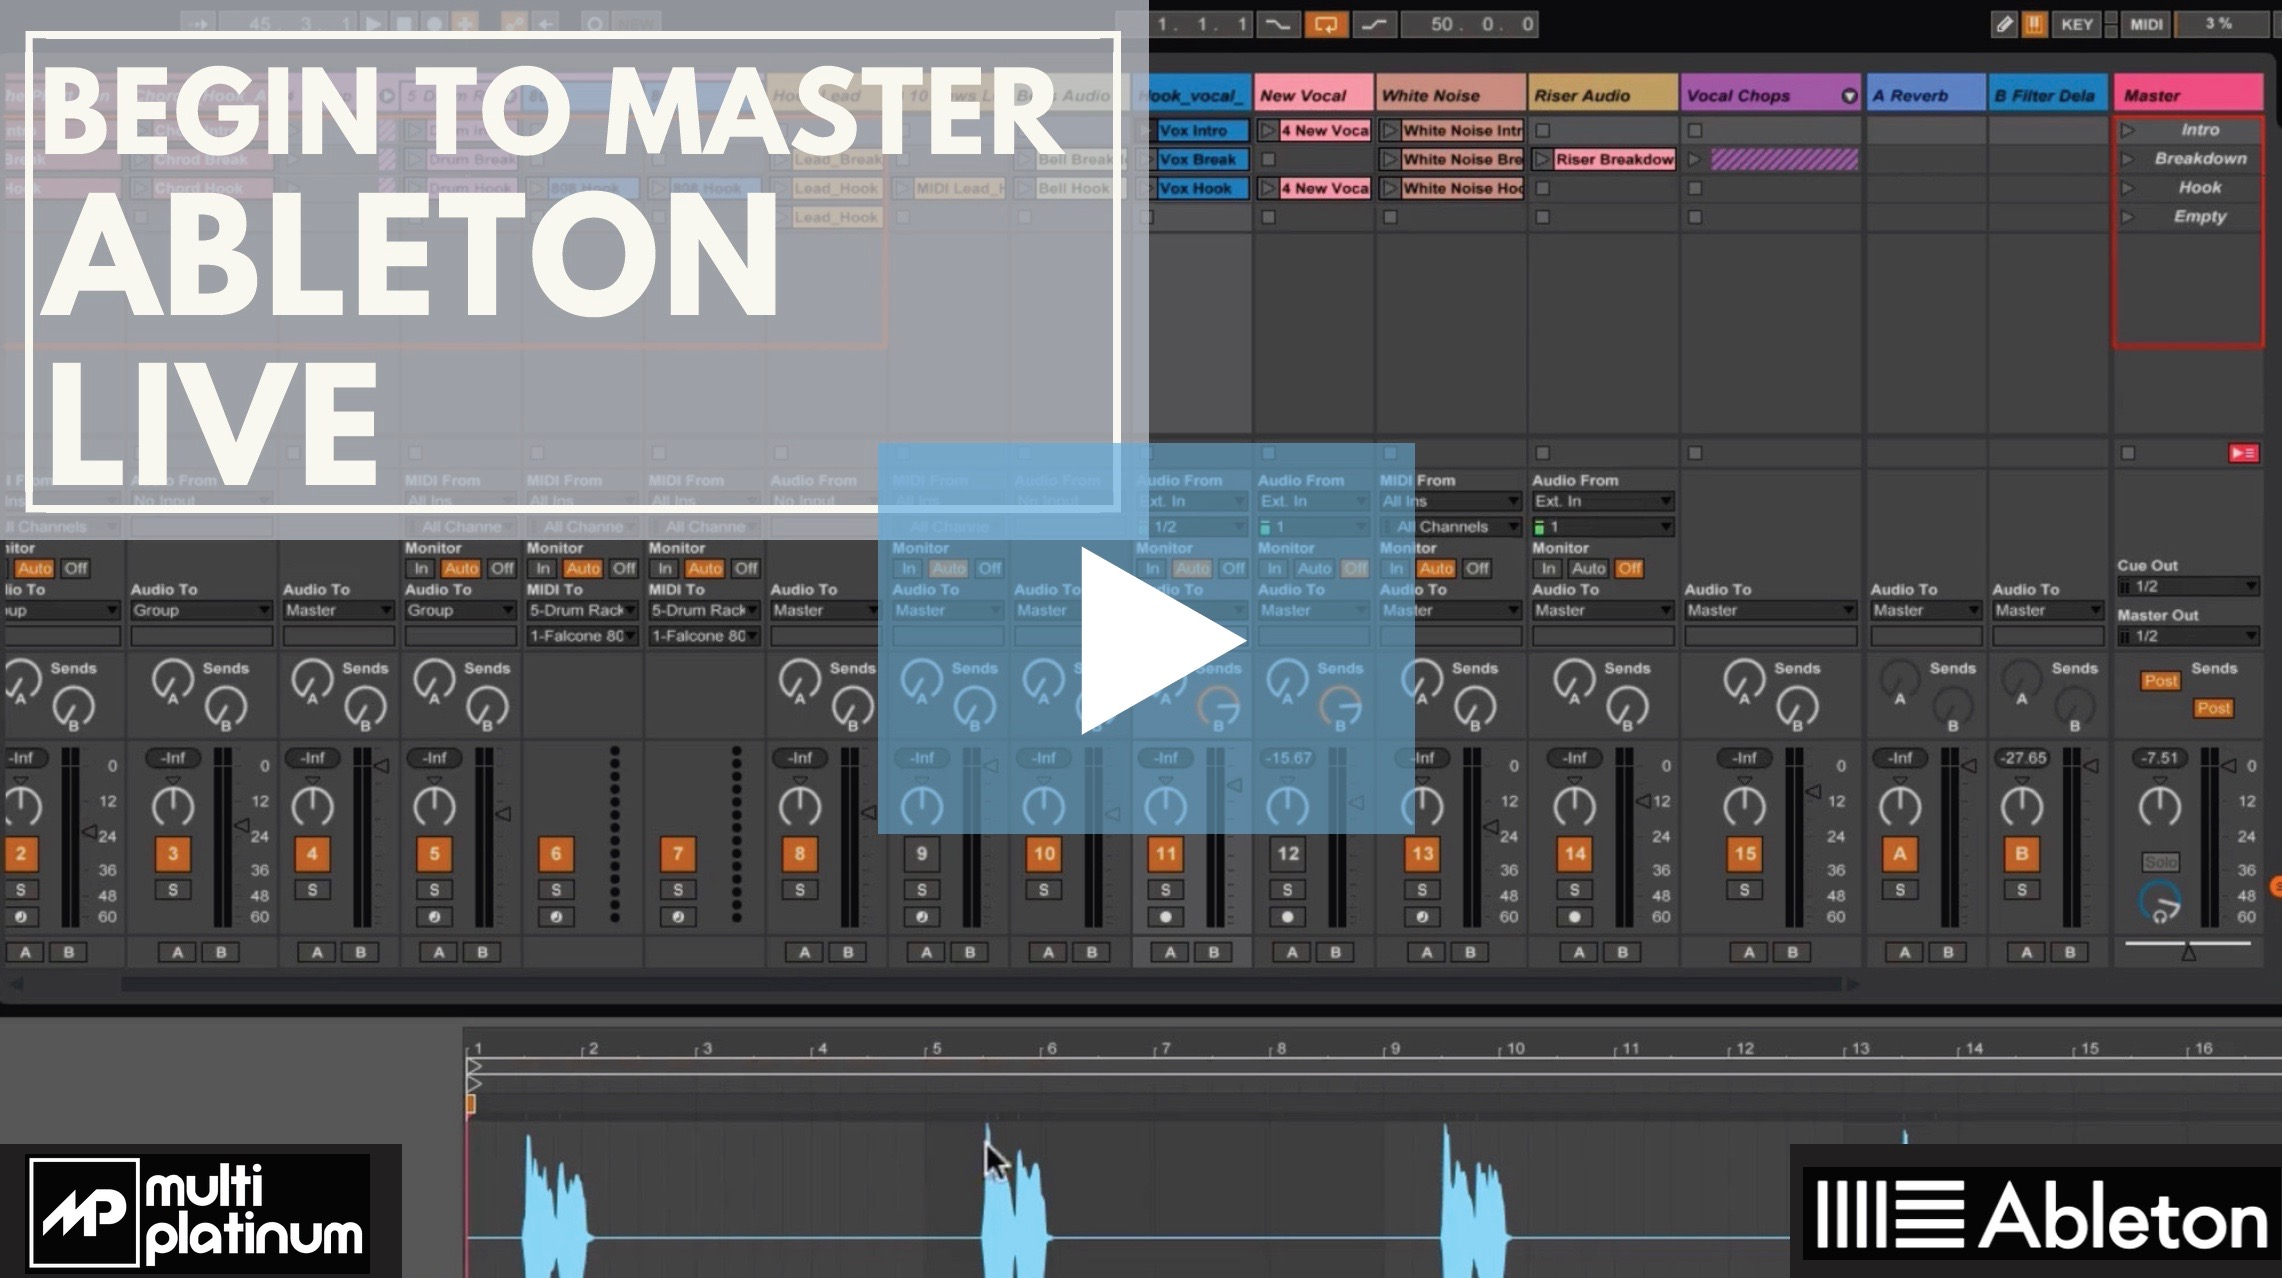 Begin To Master Ableton Live